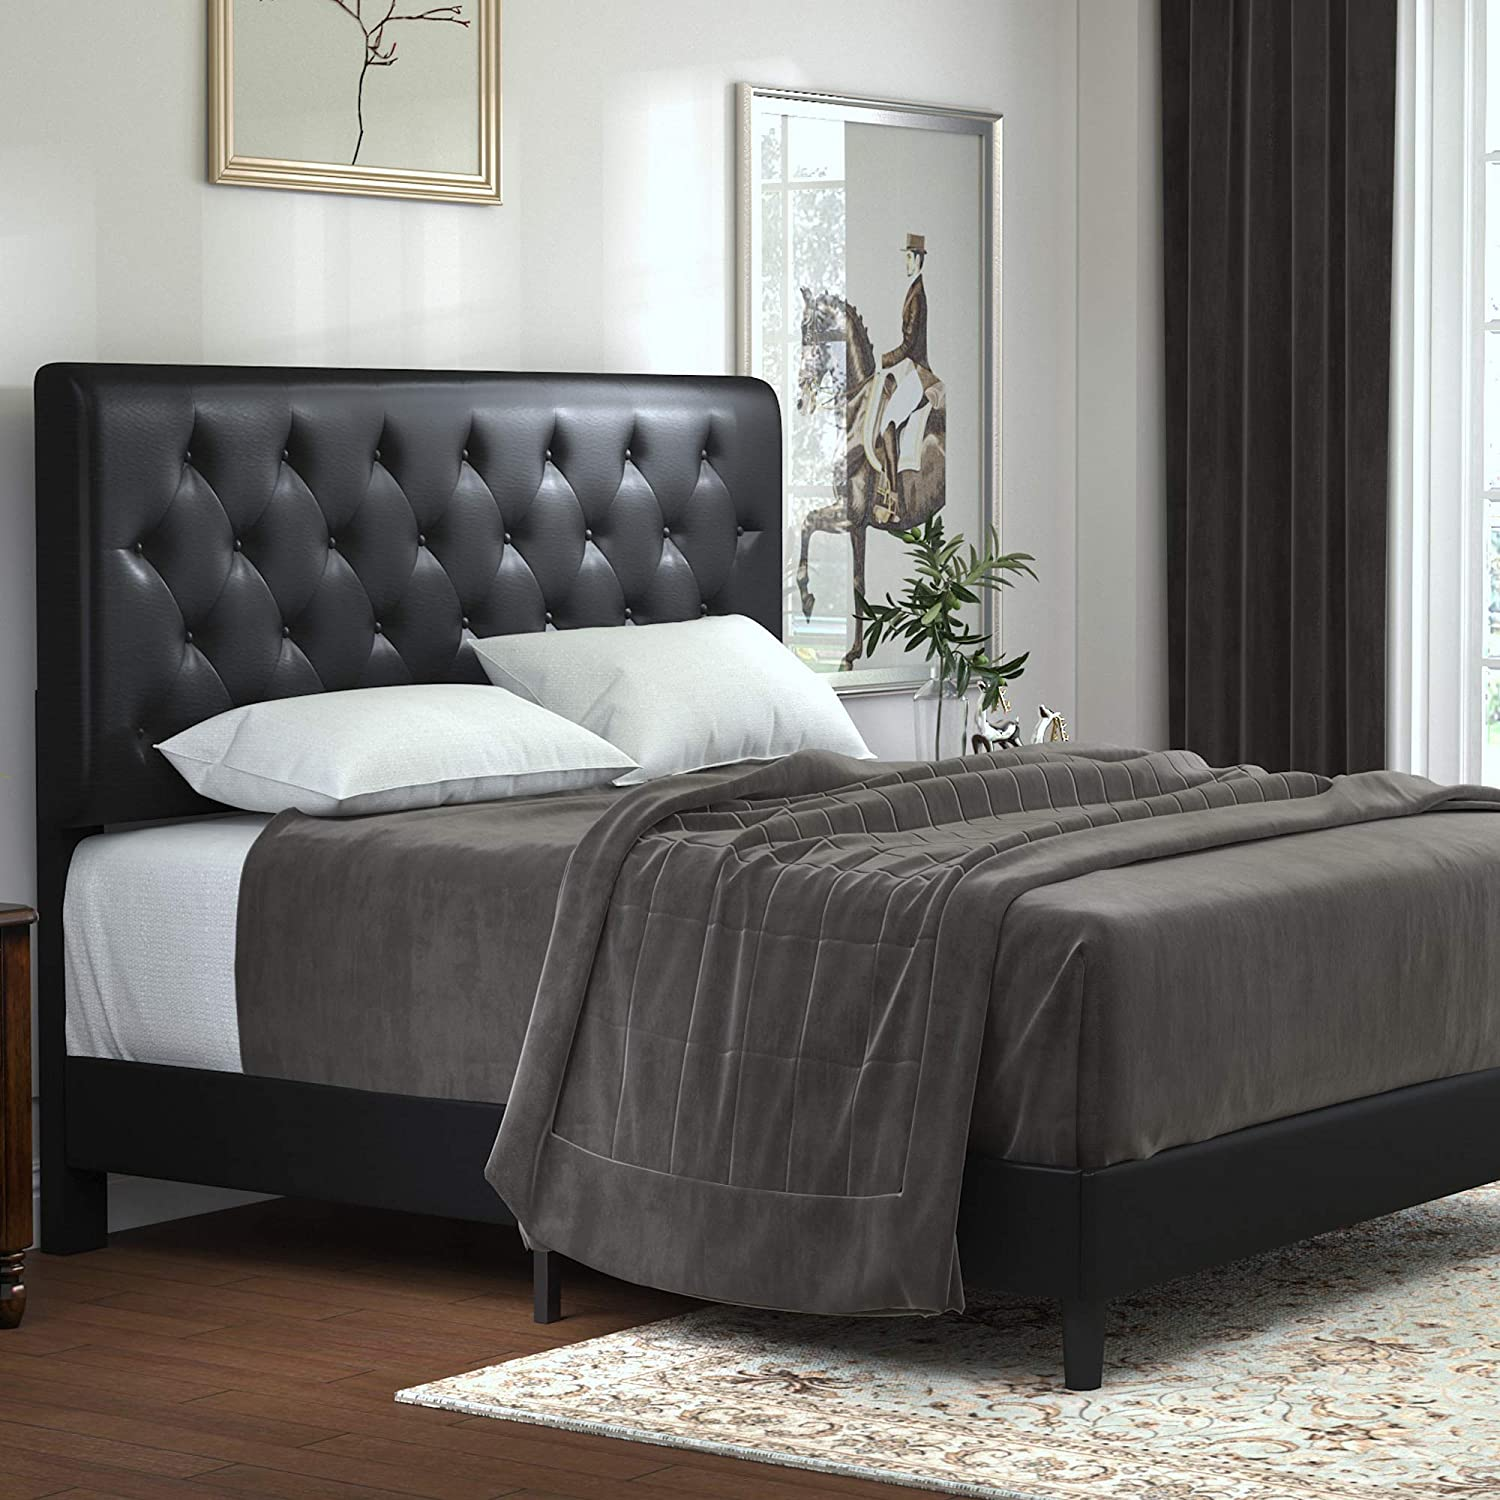 Best value for money bed with headboard for adjustable bed: Allewie Bed Frame with Headboard